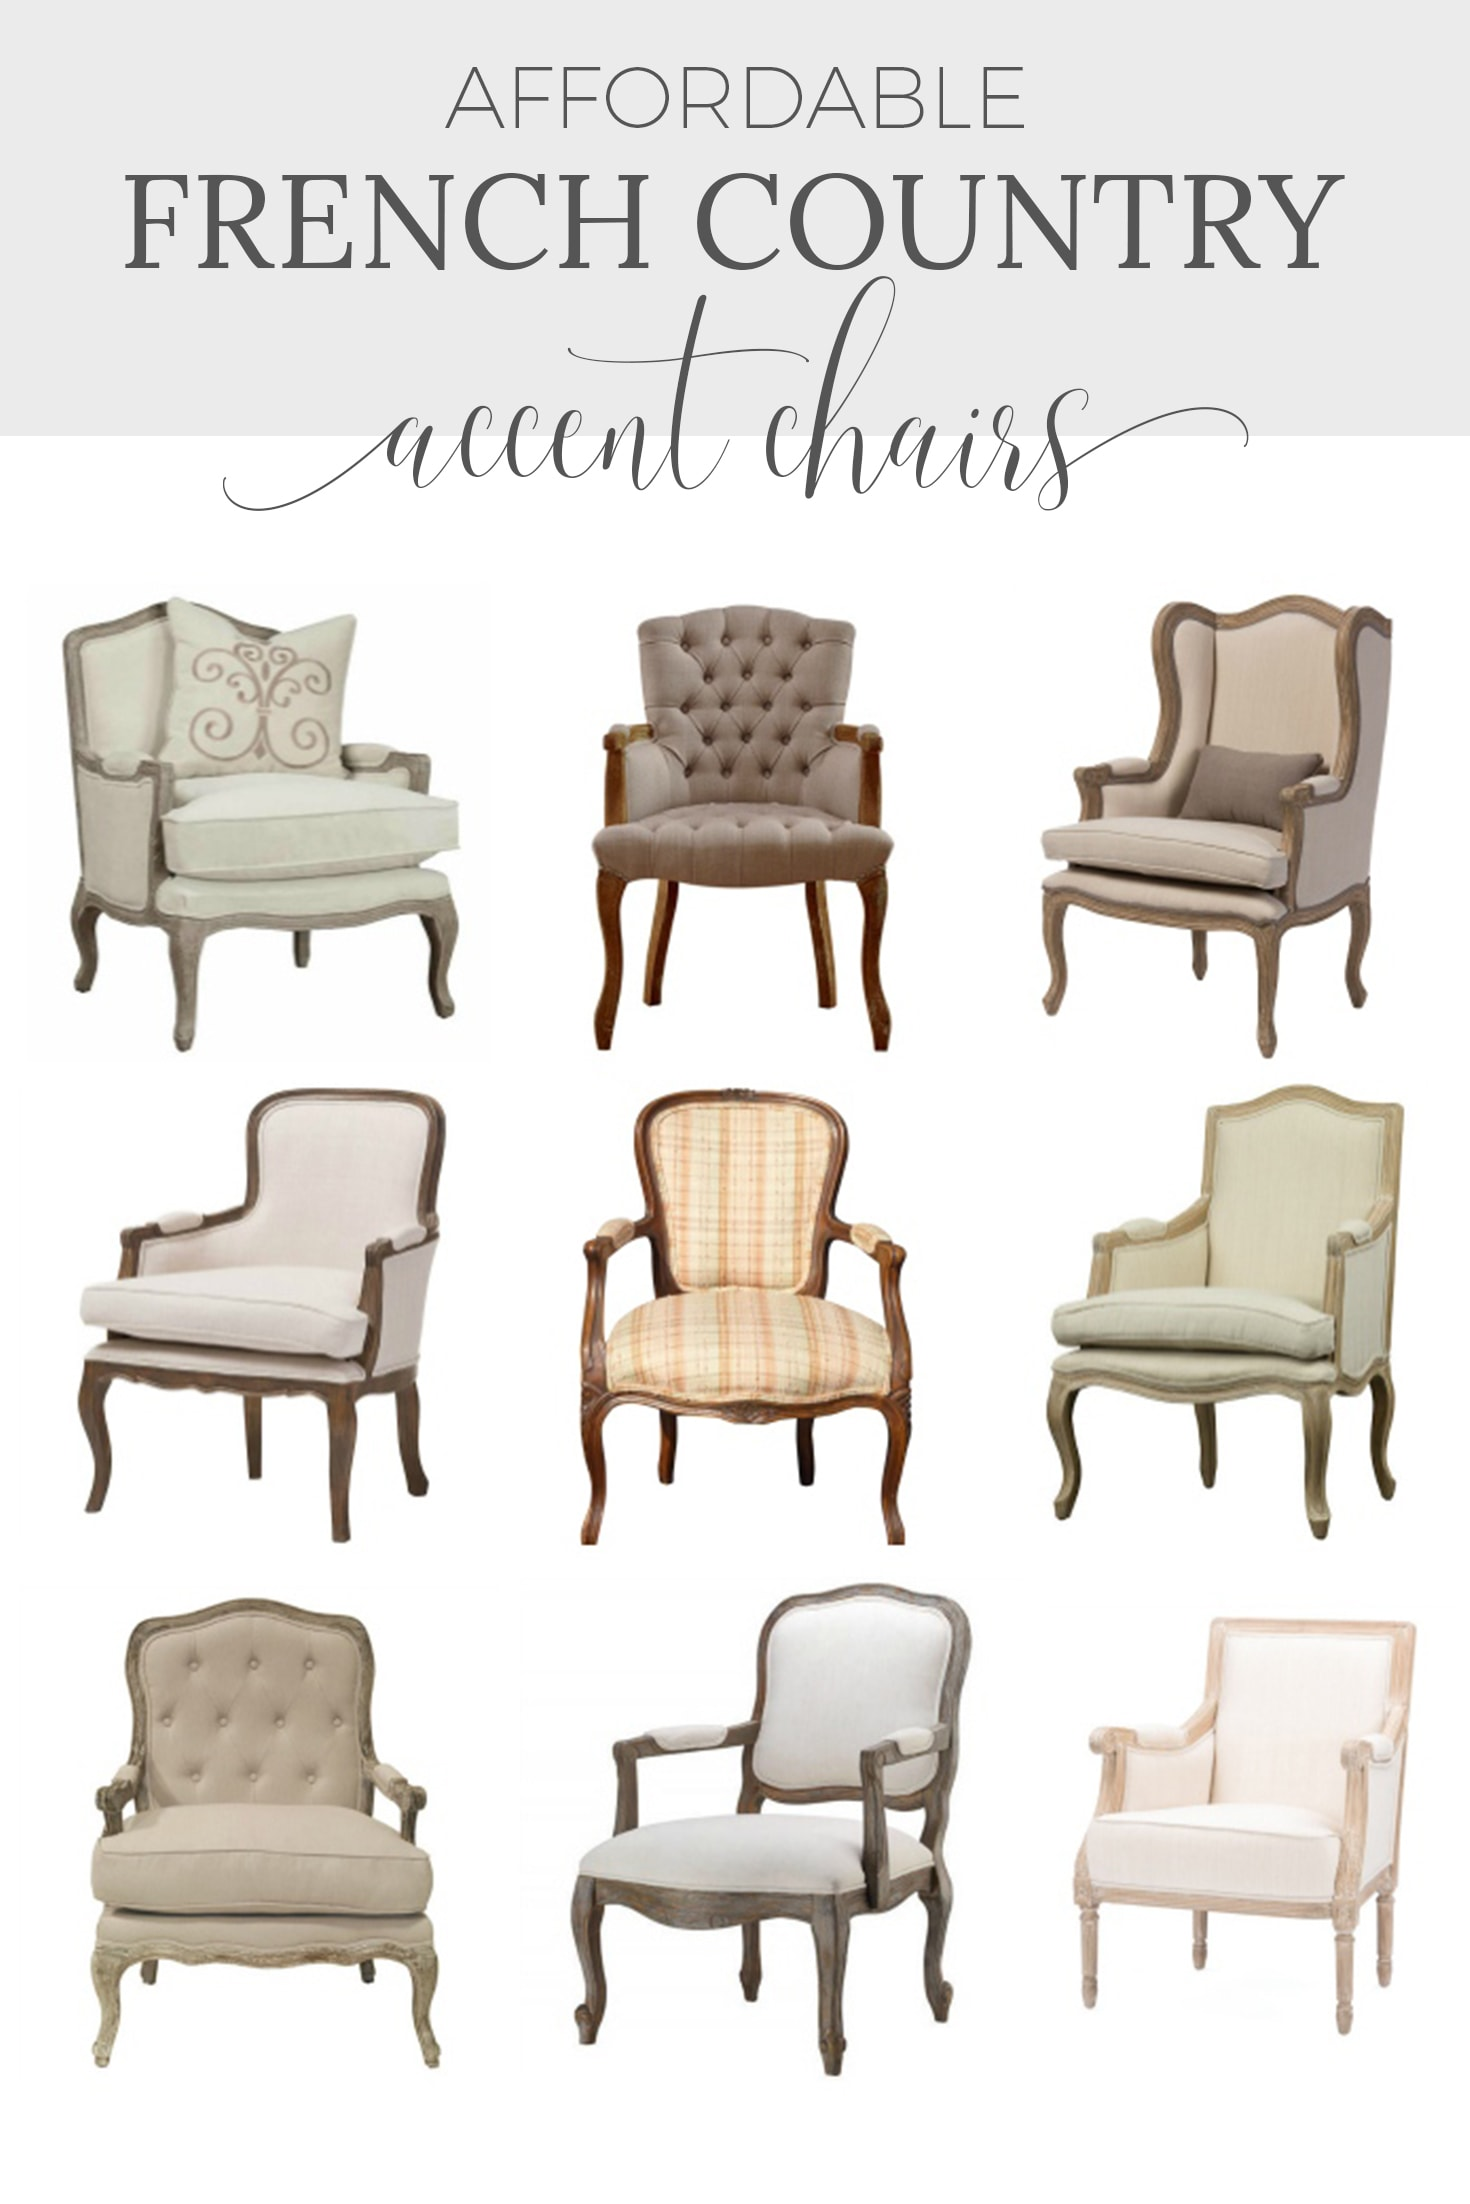 French Country Accent Chairs